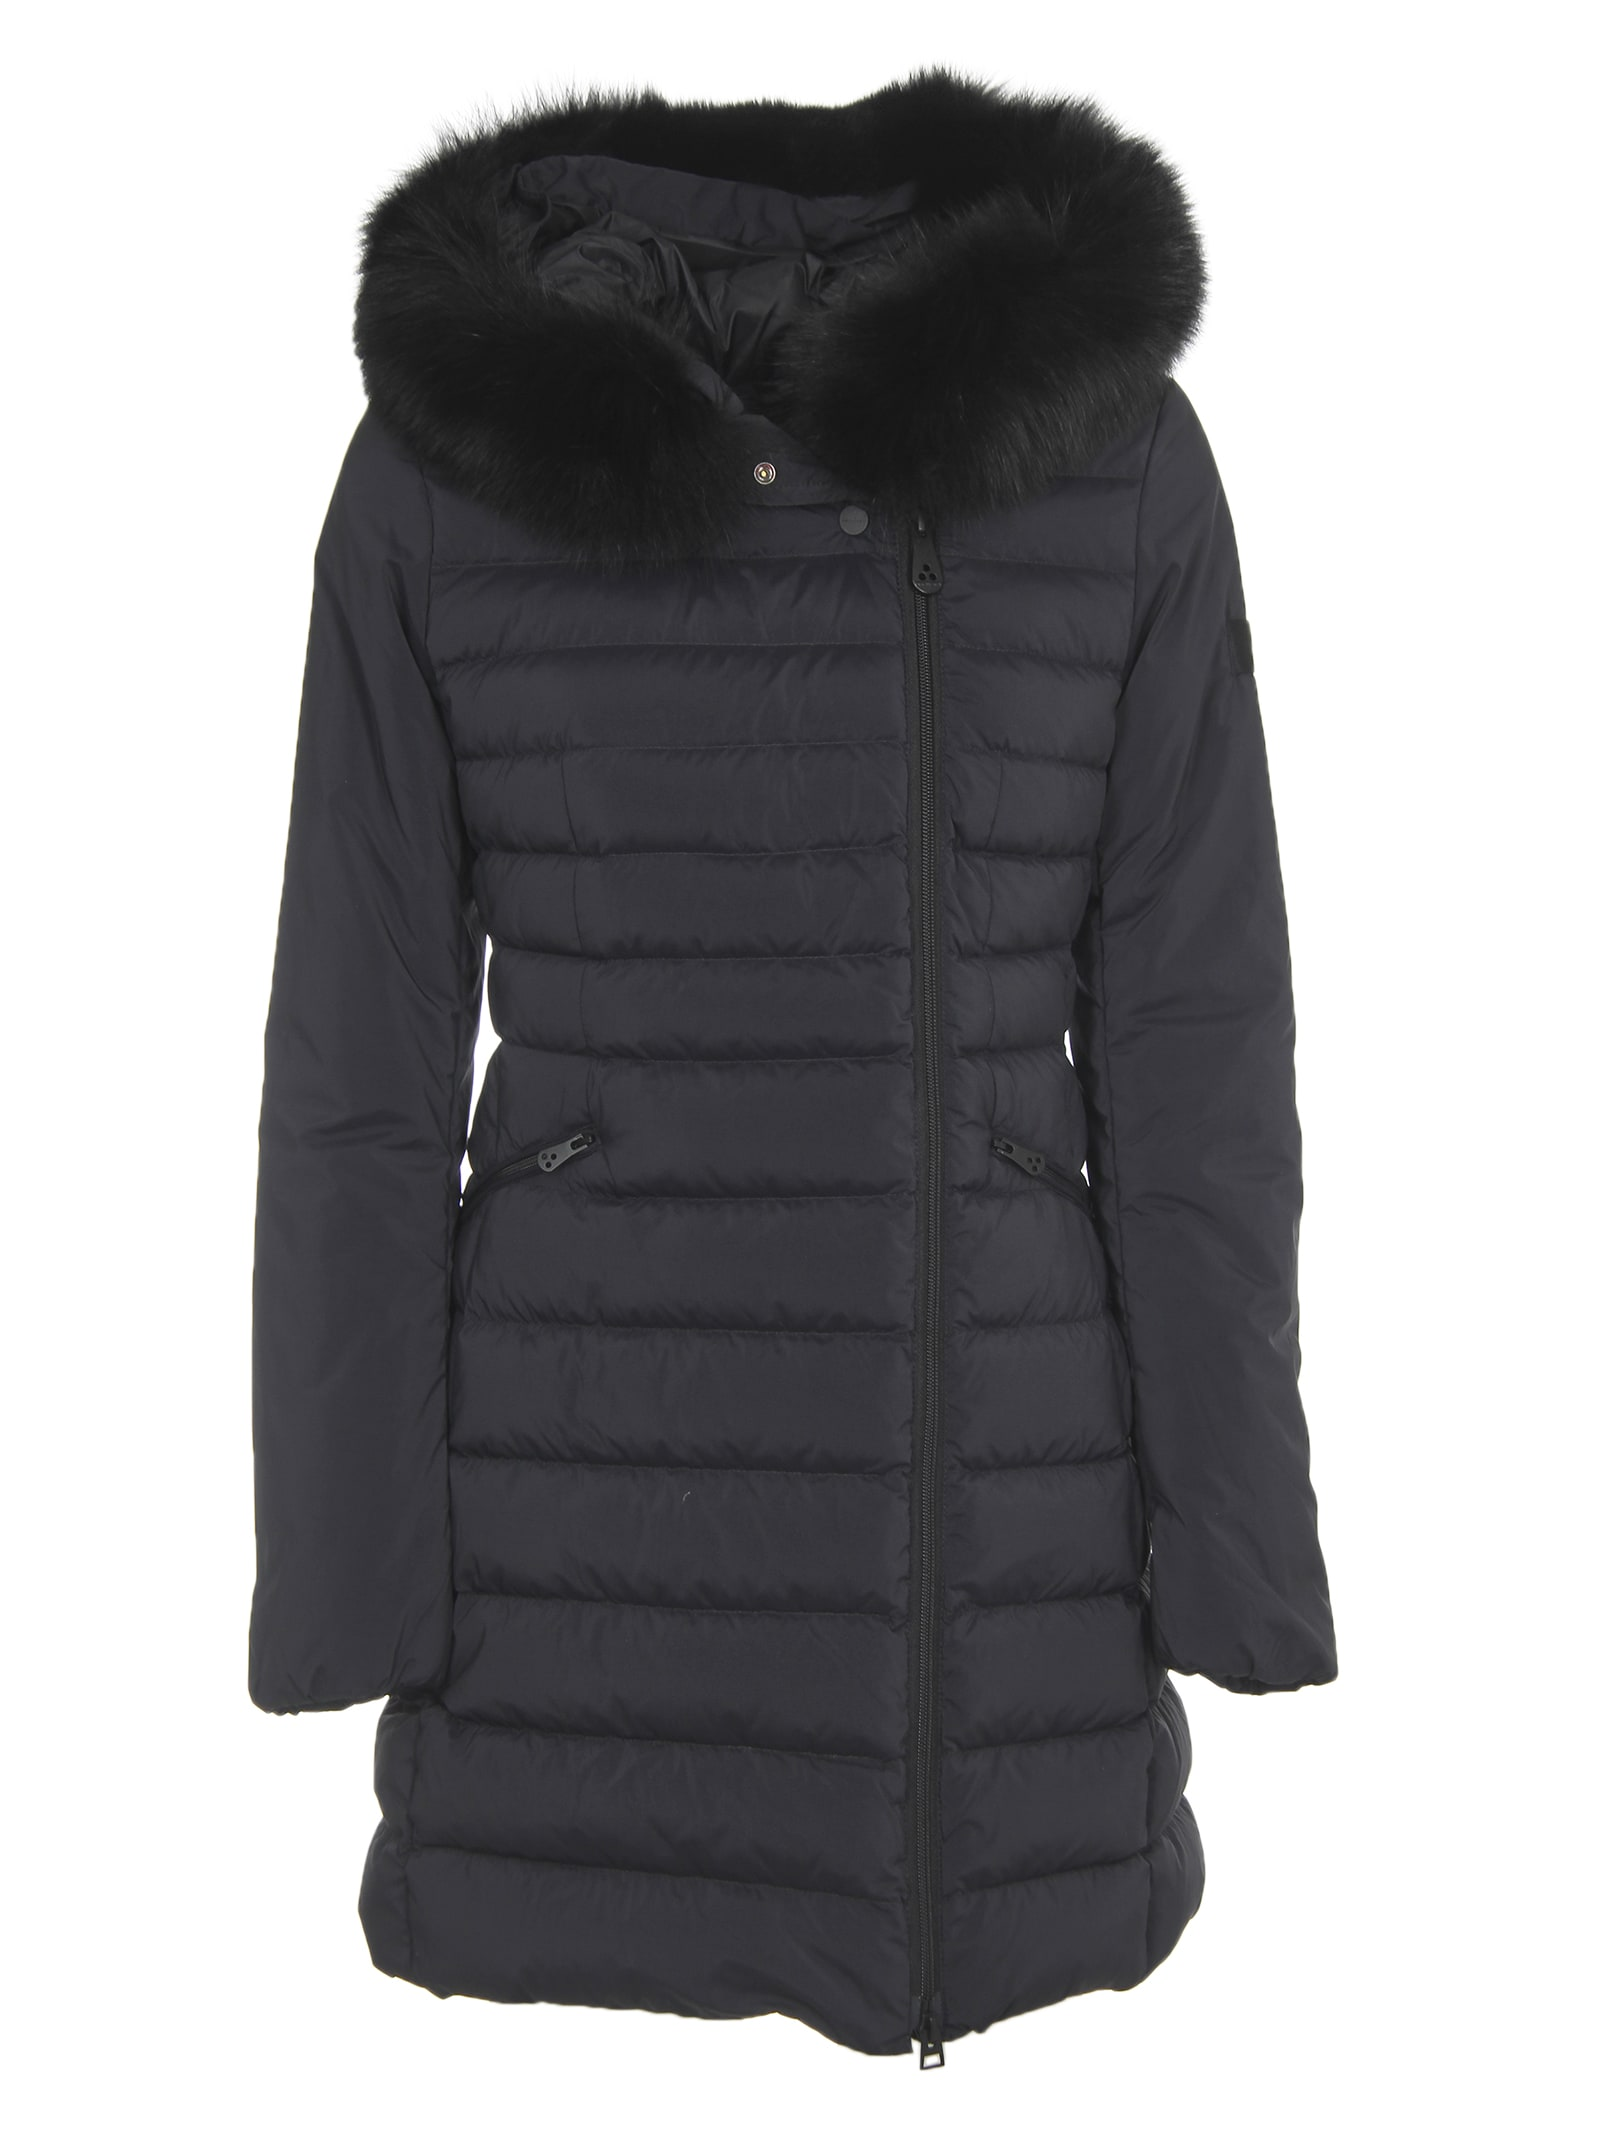 Peuterey Long Black Down Jacket